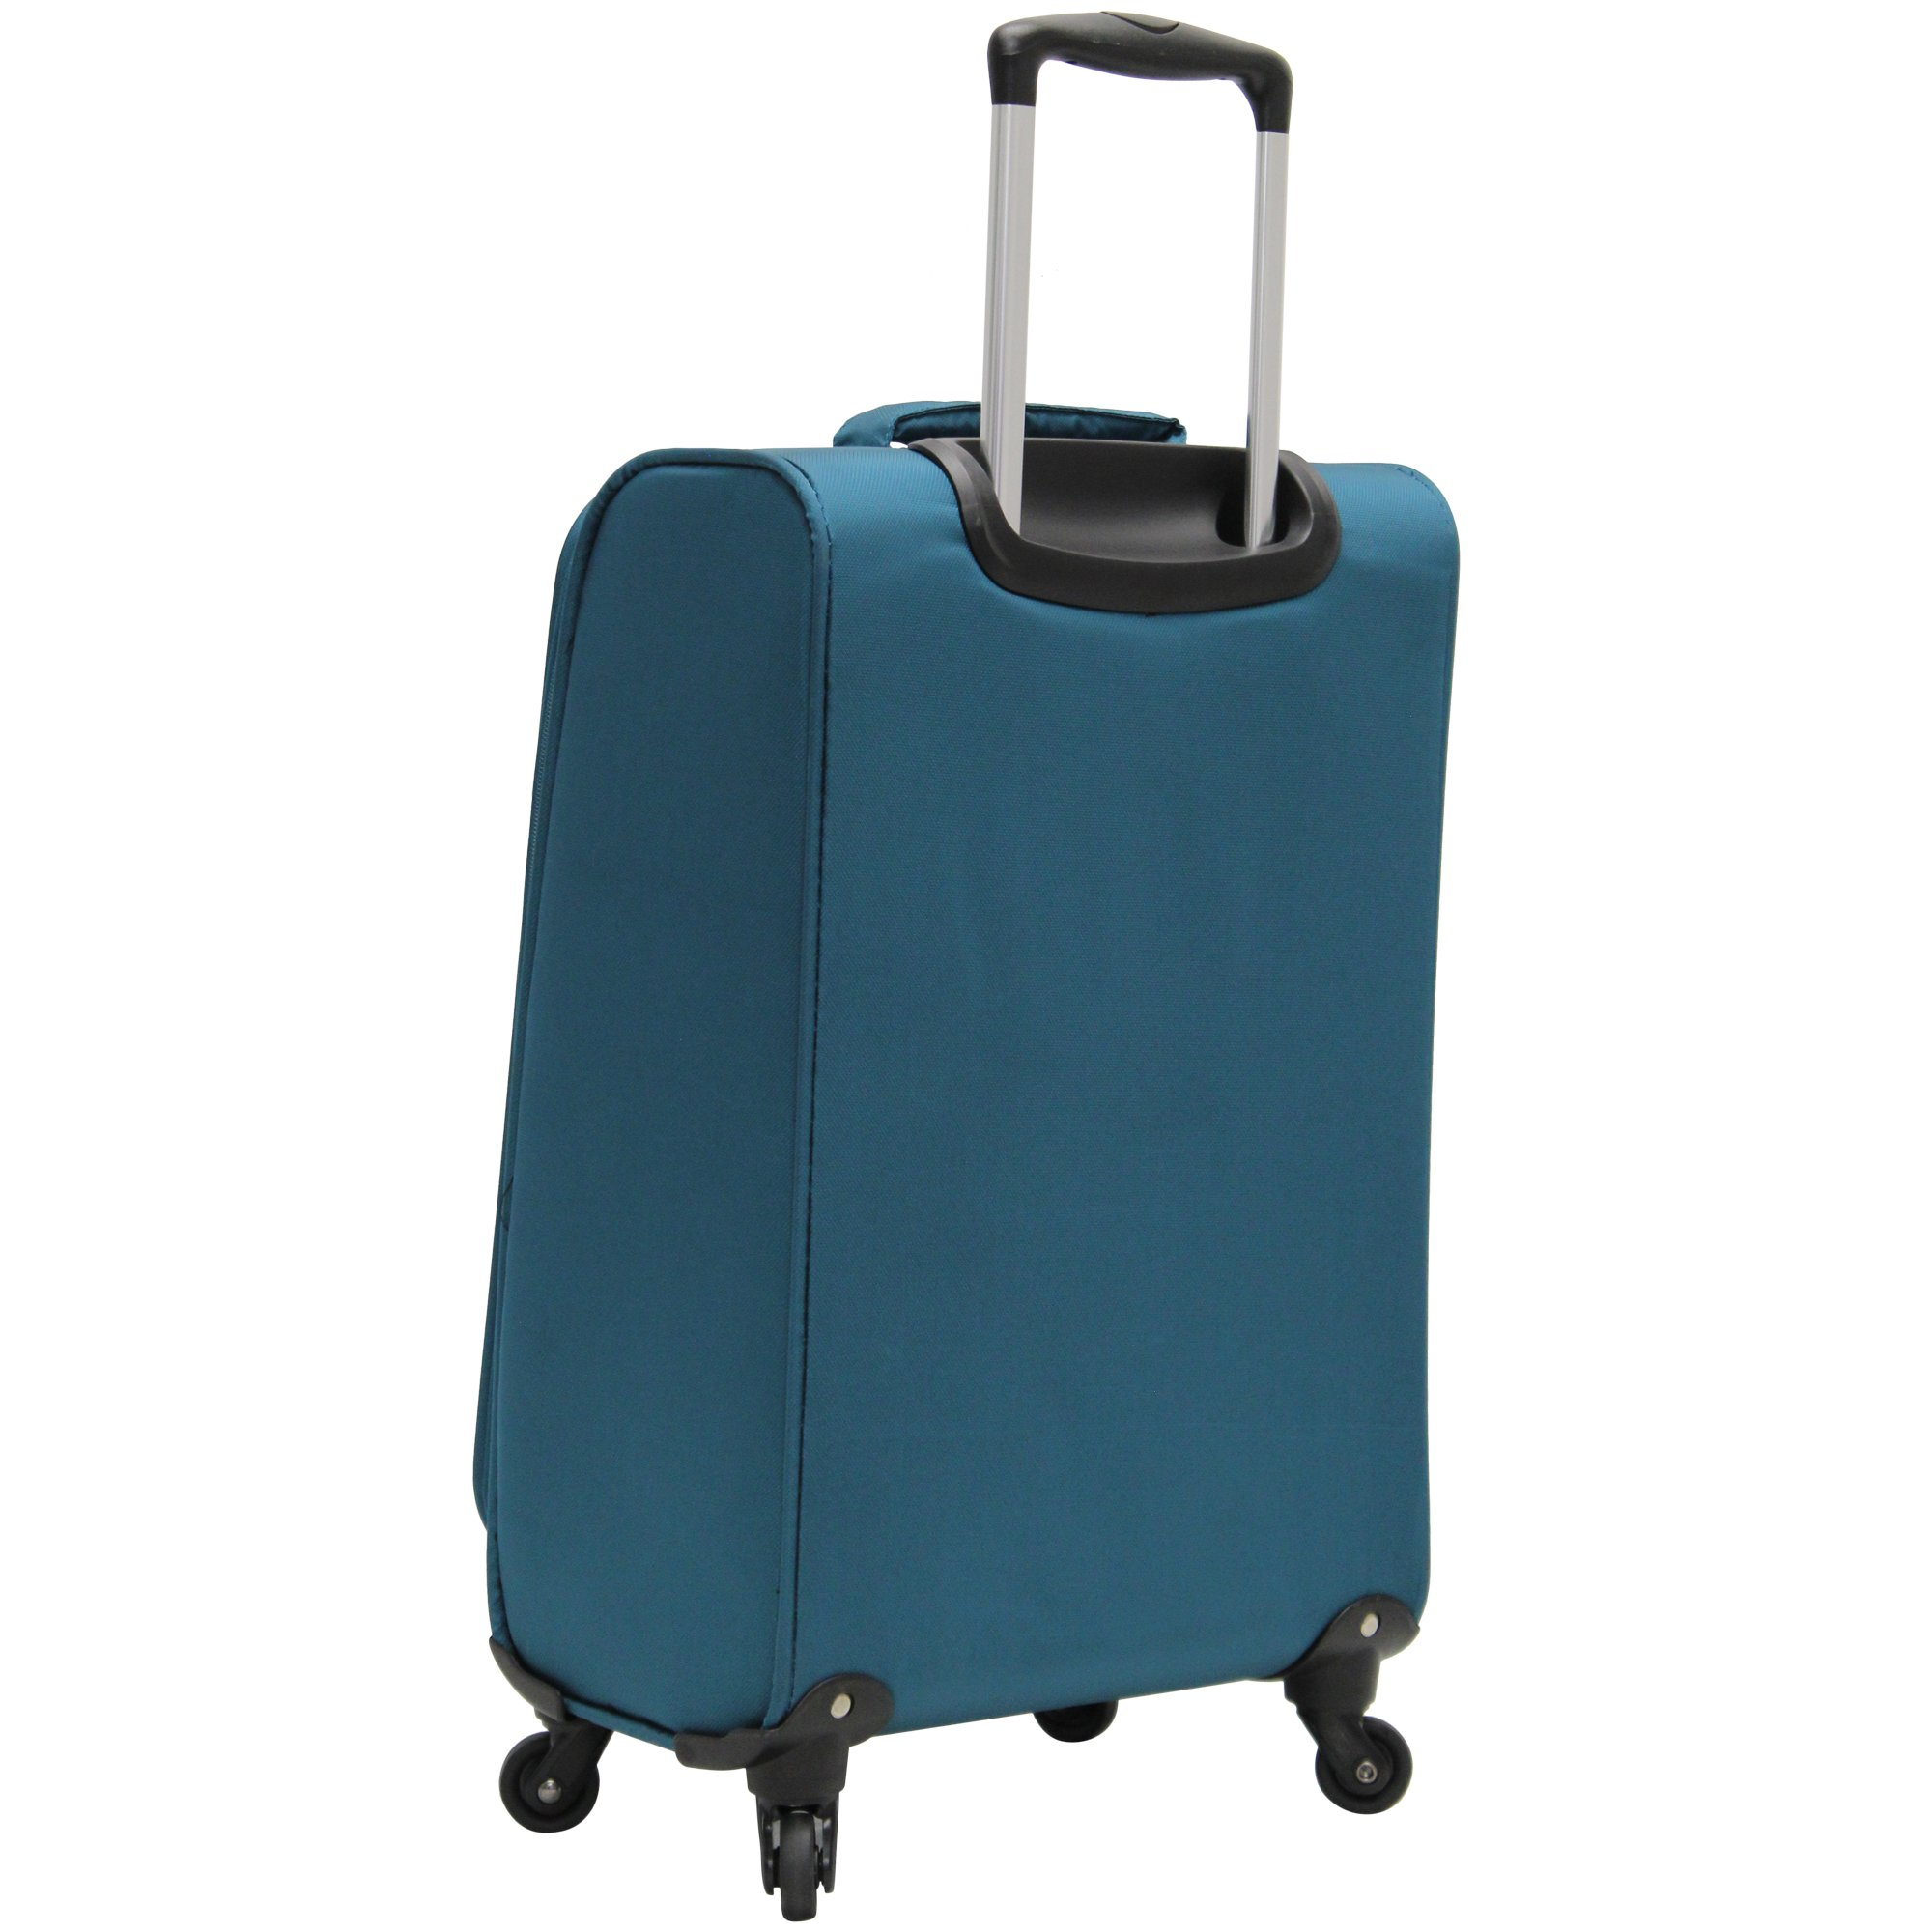 Lucas Luggage Ultra Lightweight Carry On 20 inch Expandable Suitcase With Spinner Wheels (20in, Teal) by Lucas (Image #3)